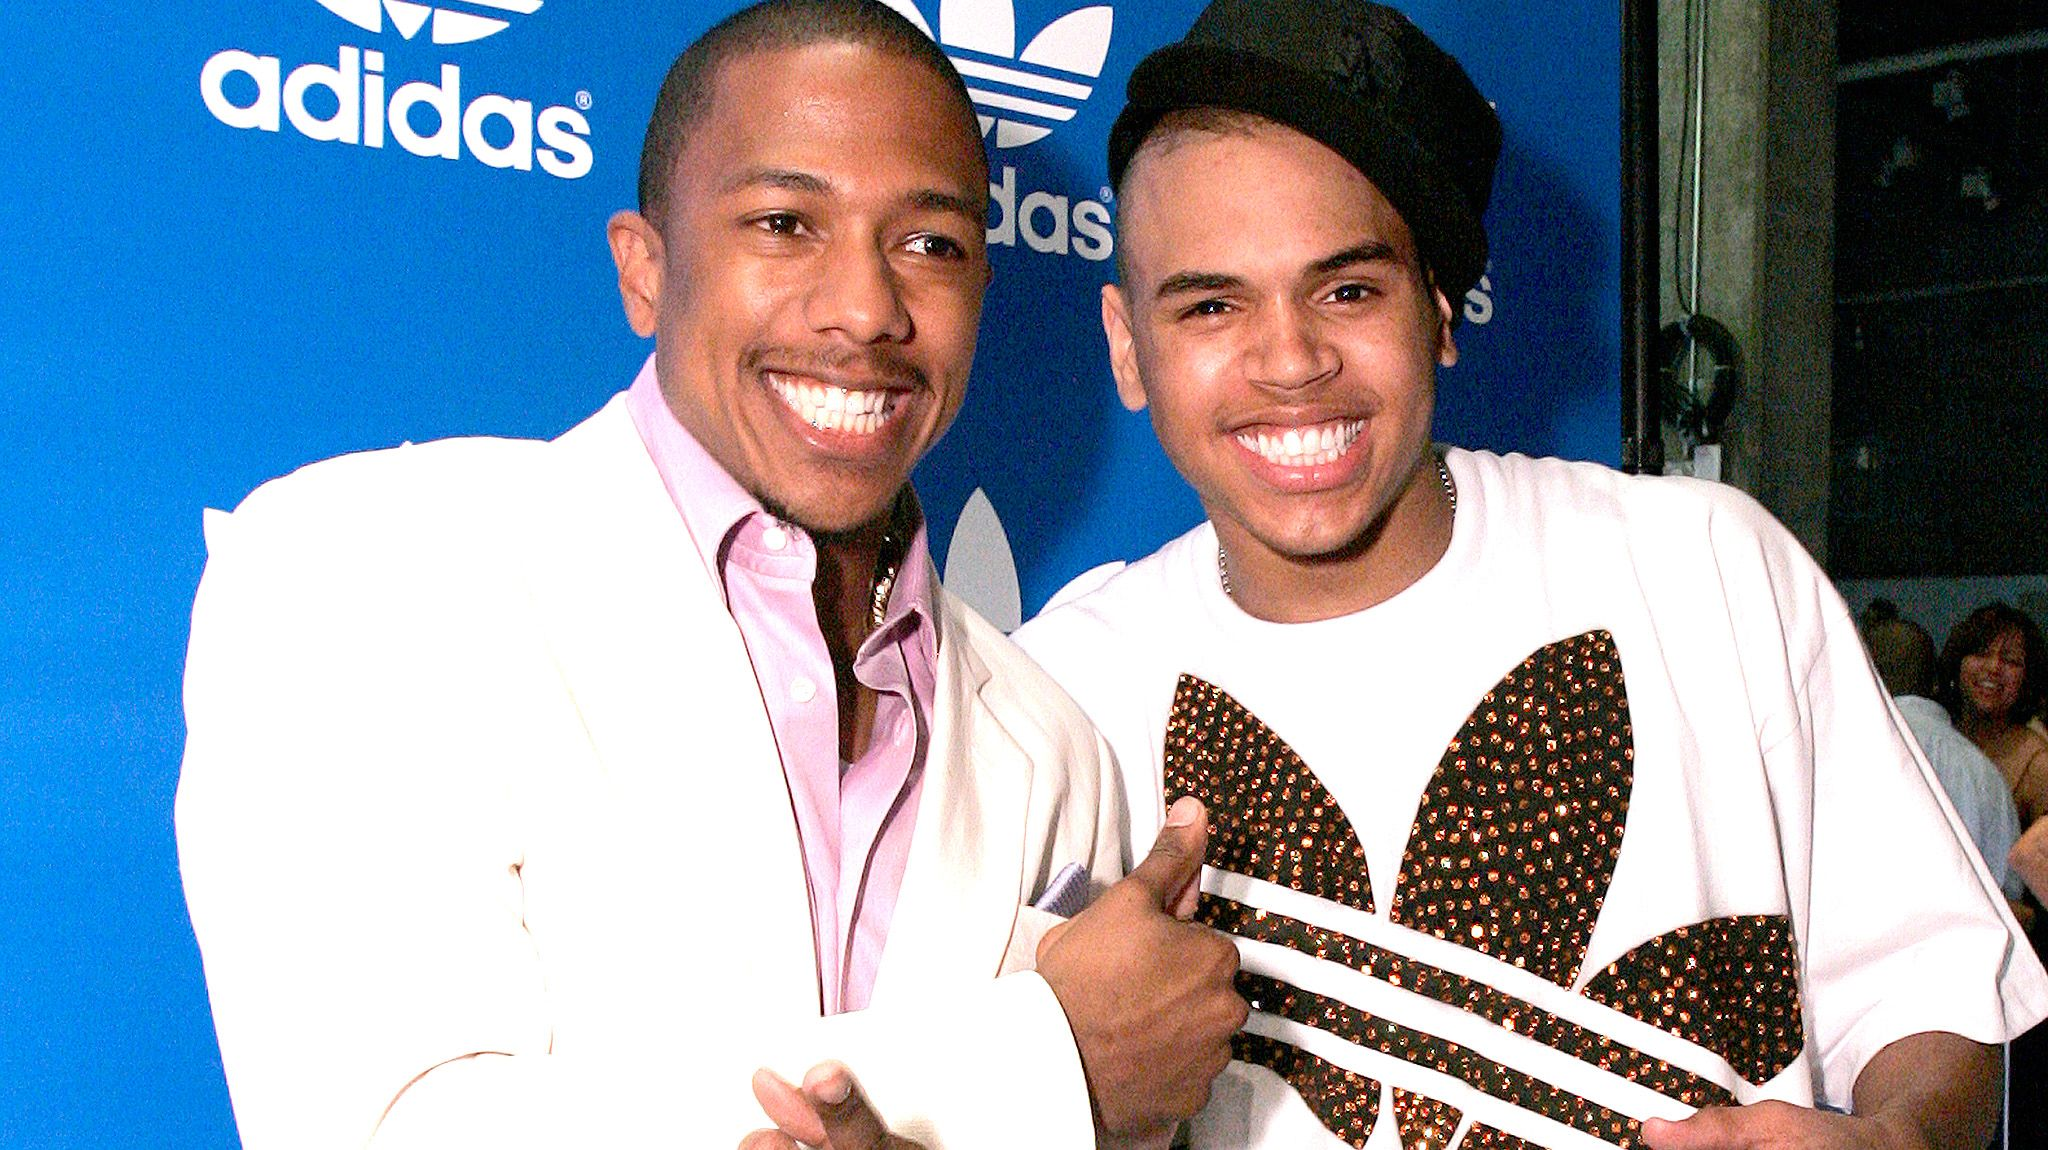 Nick Cannon and Chris Brown Link Up for Forthcoming Film, 'She Ball'